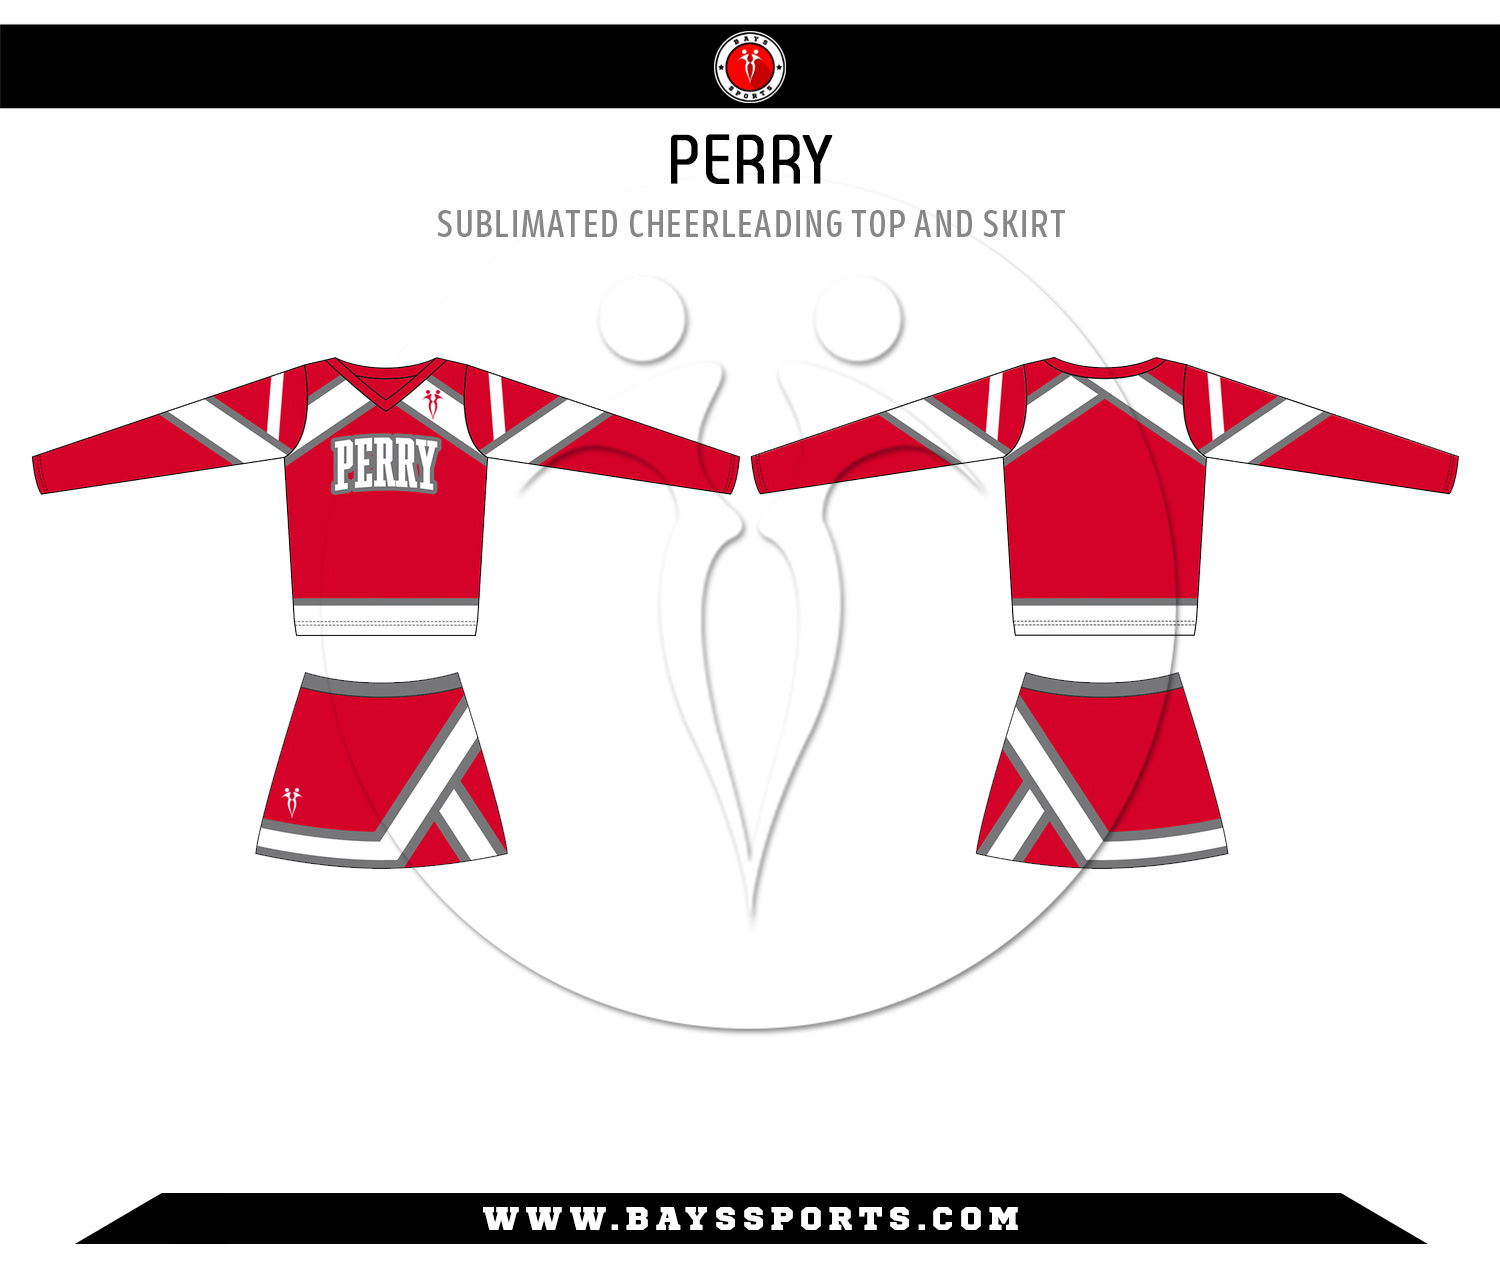 Sublimated Cheerleading Top and Skirt